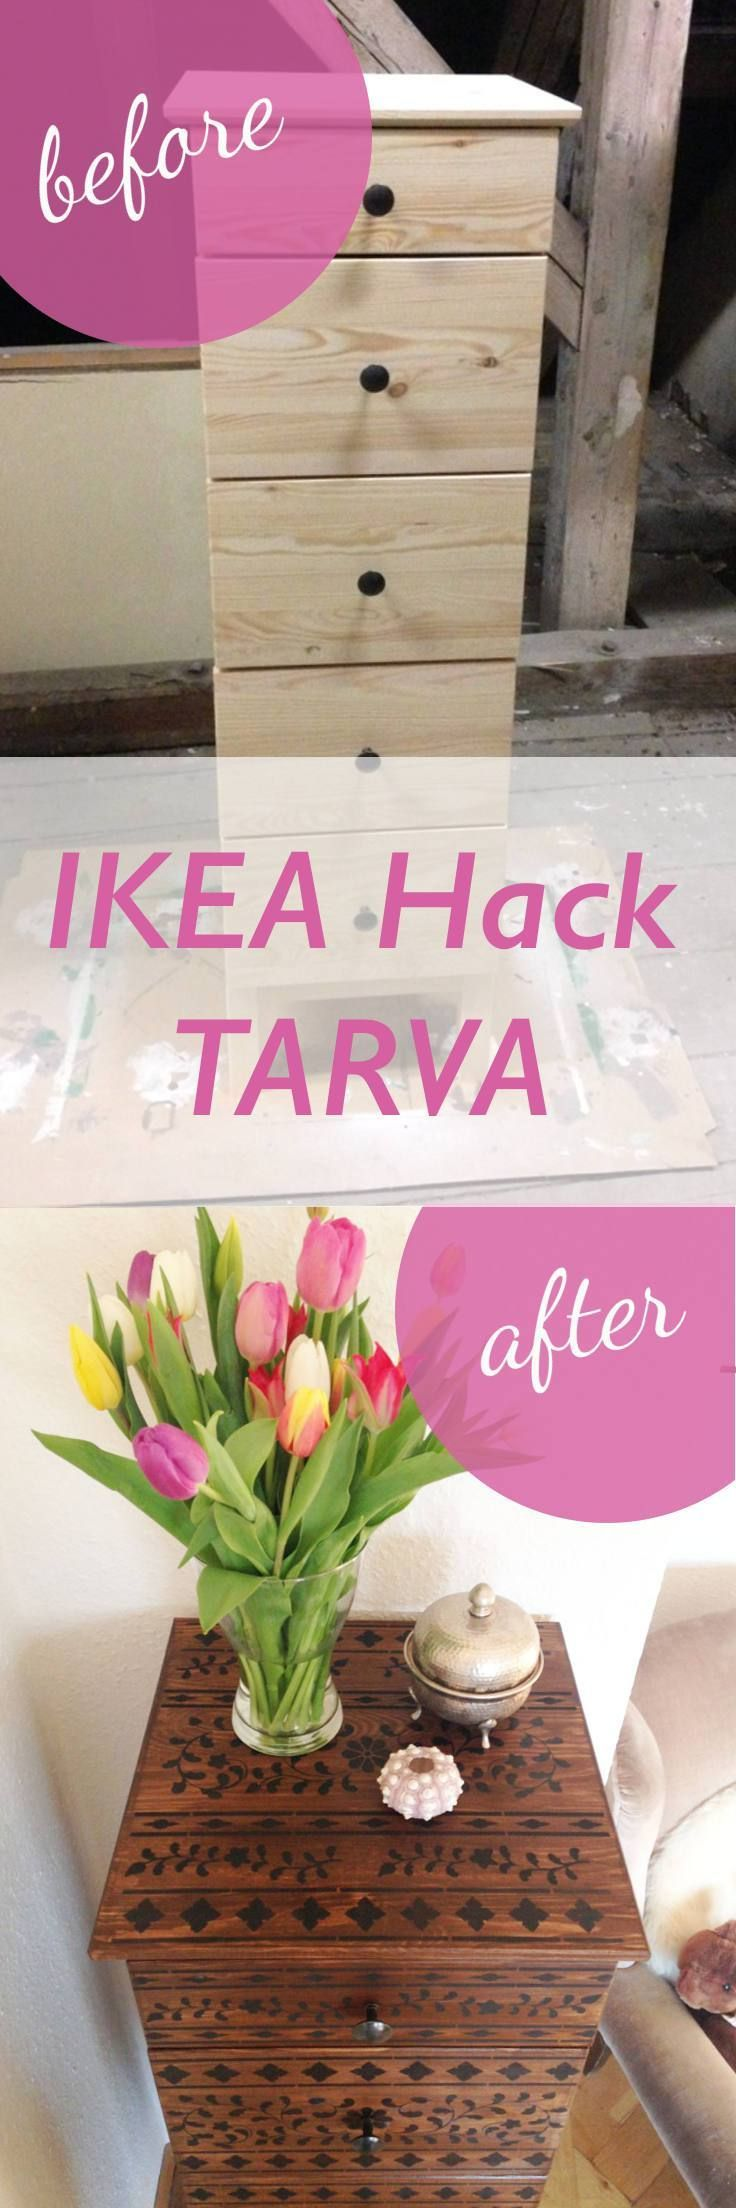 IKEA Hack TARVA – Oriental Vibes With Stain And Stencils #furnitureredos